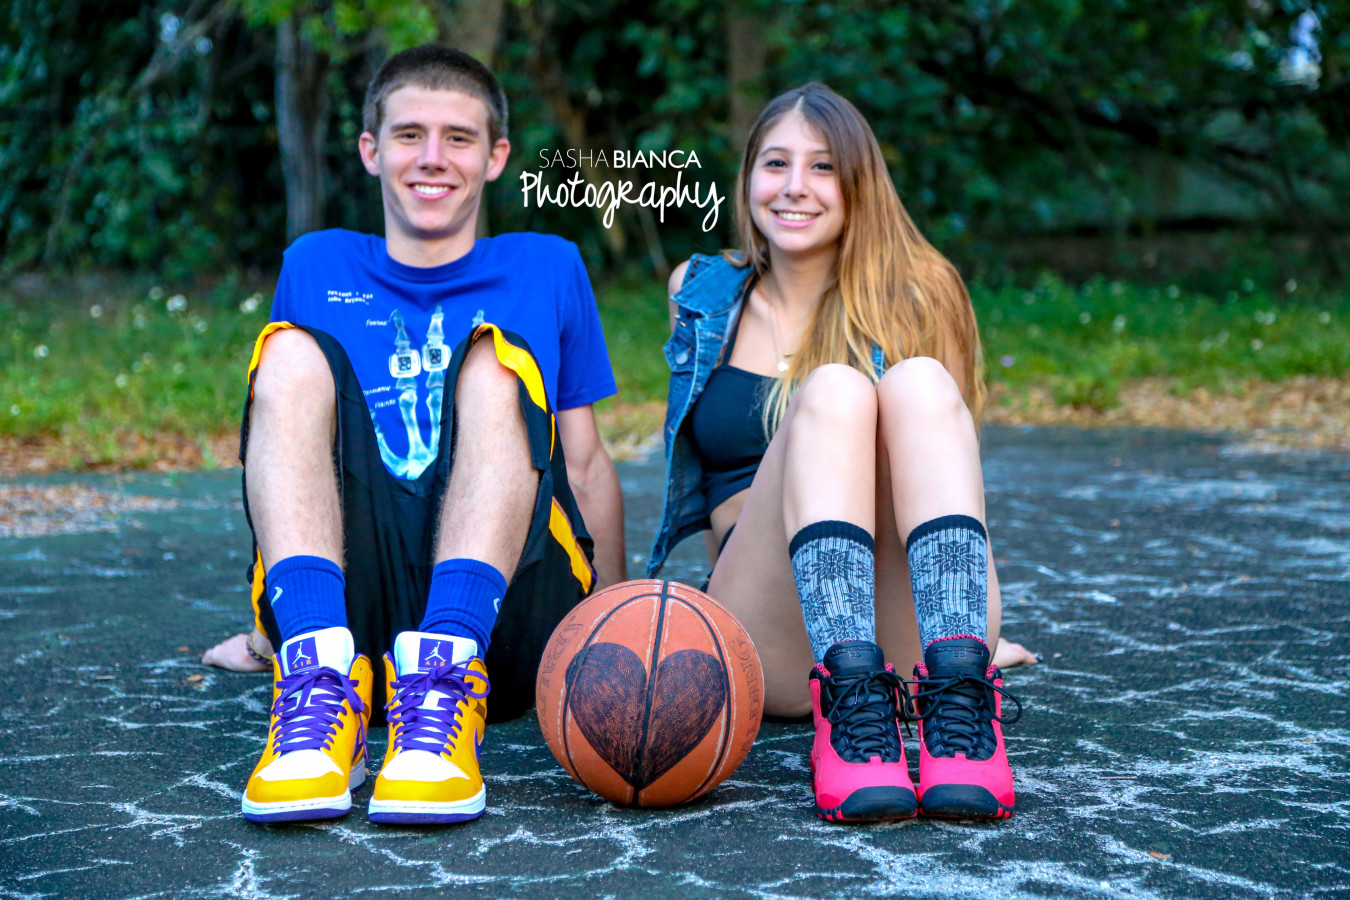 Sasha Bianca Photography All S Fair In Love And Basketball